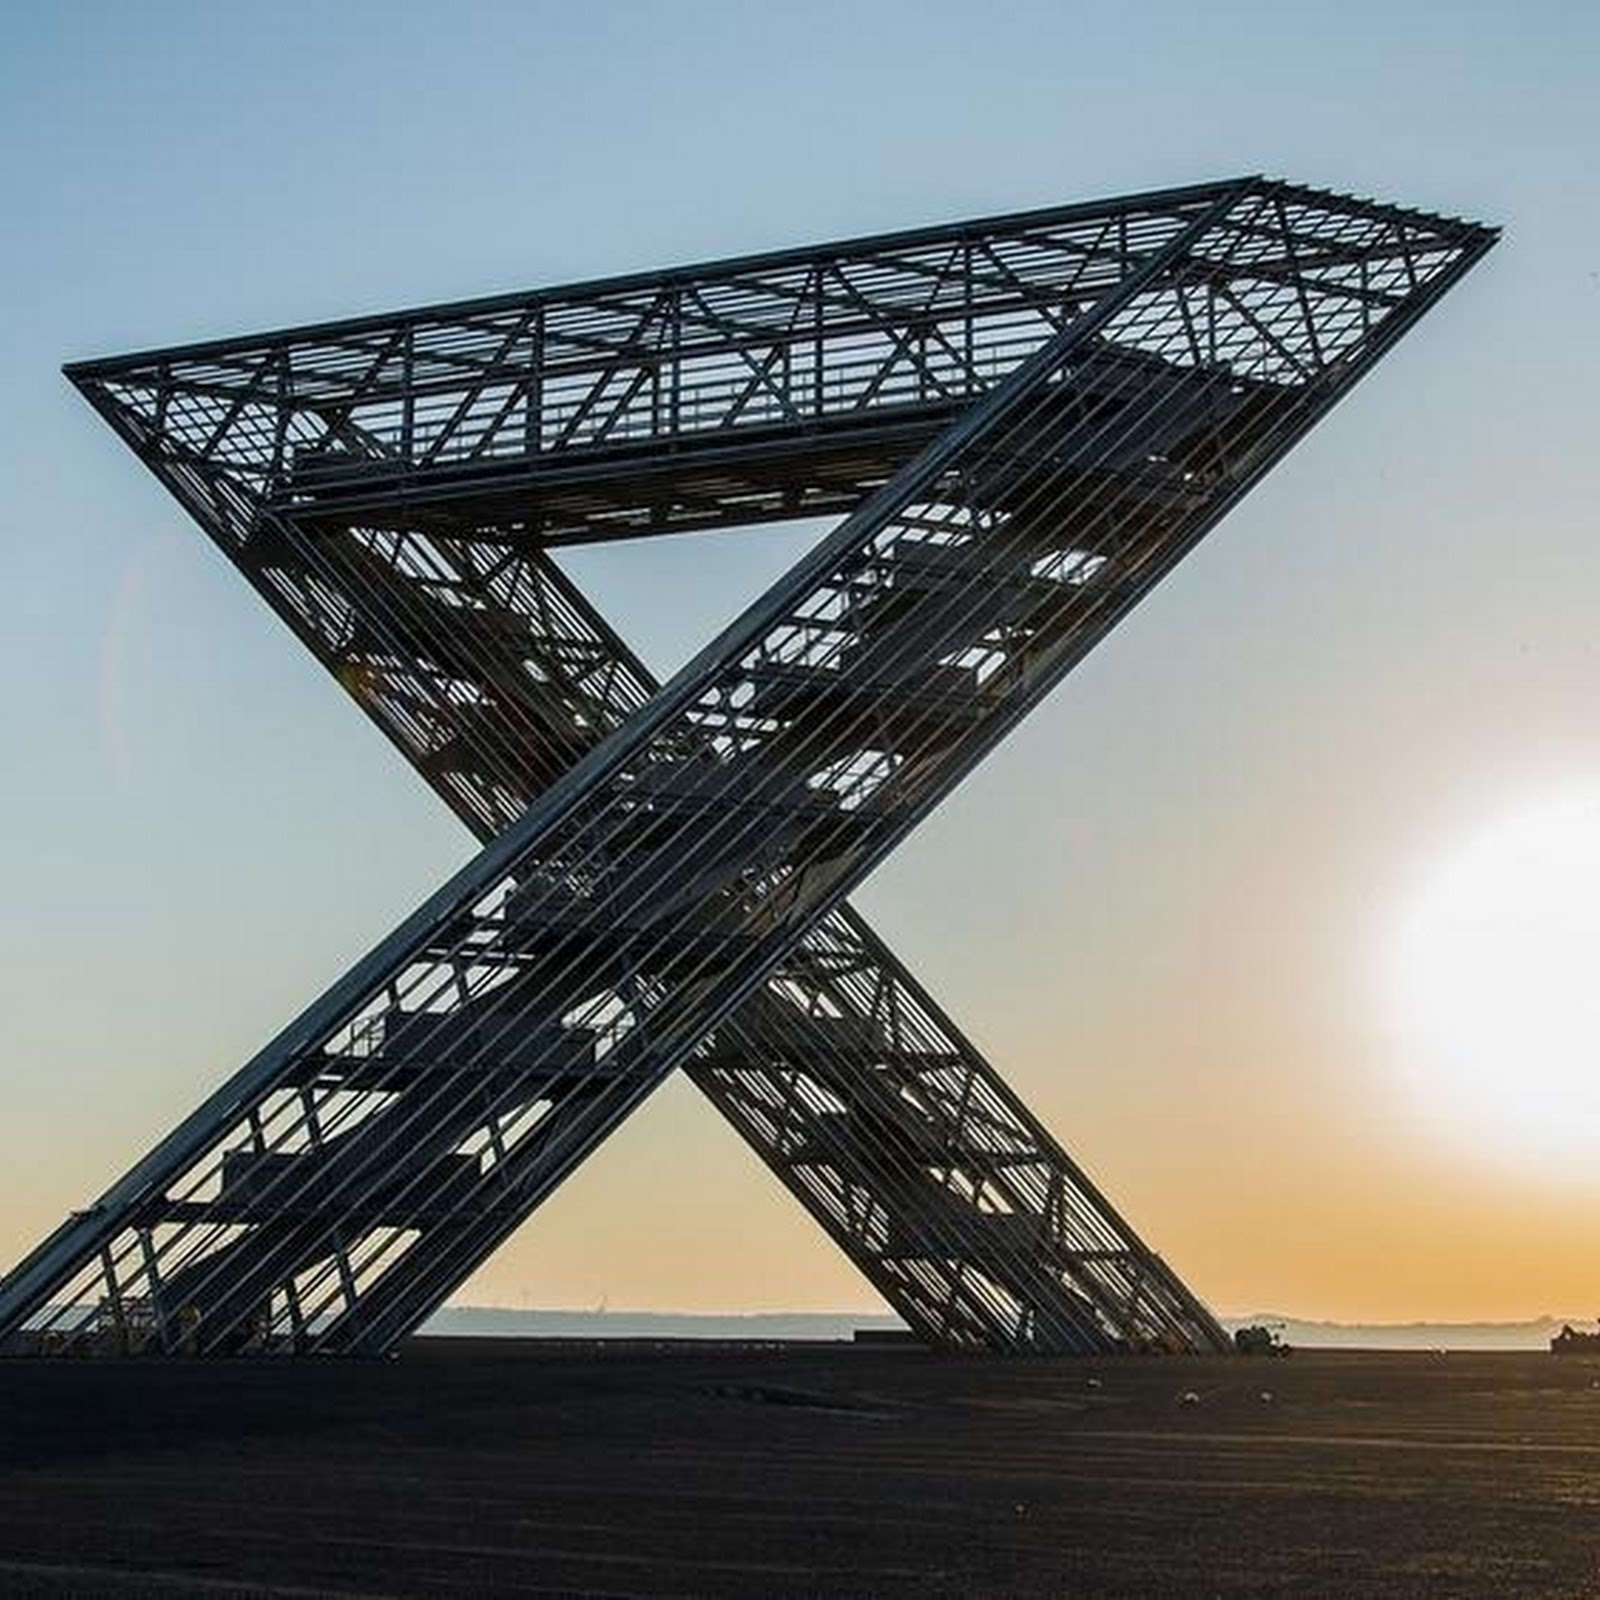 Saar Polygon: A Monument to Coal Mining in Germany